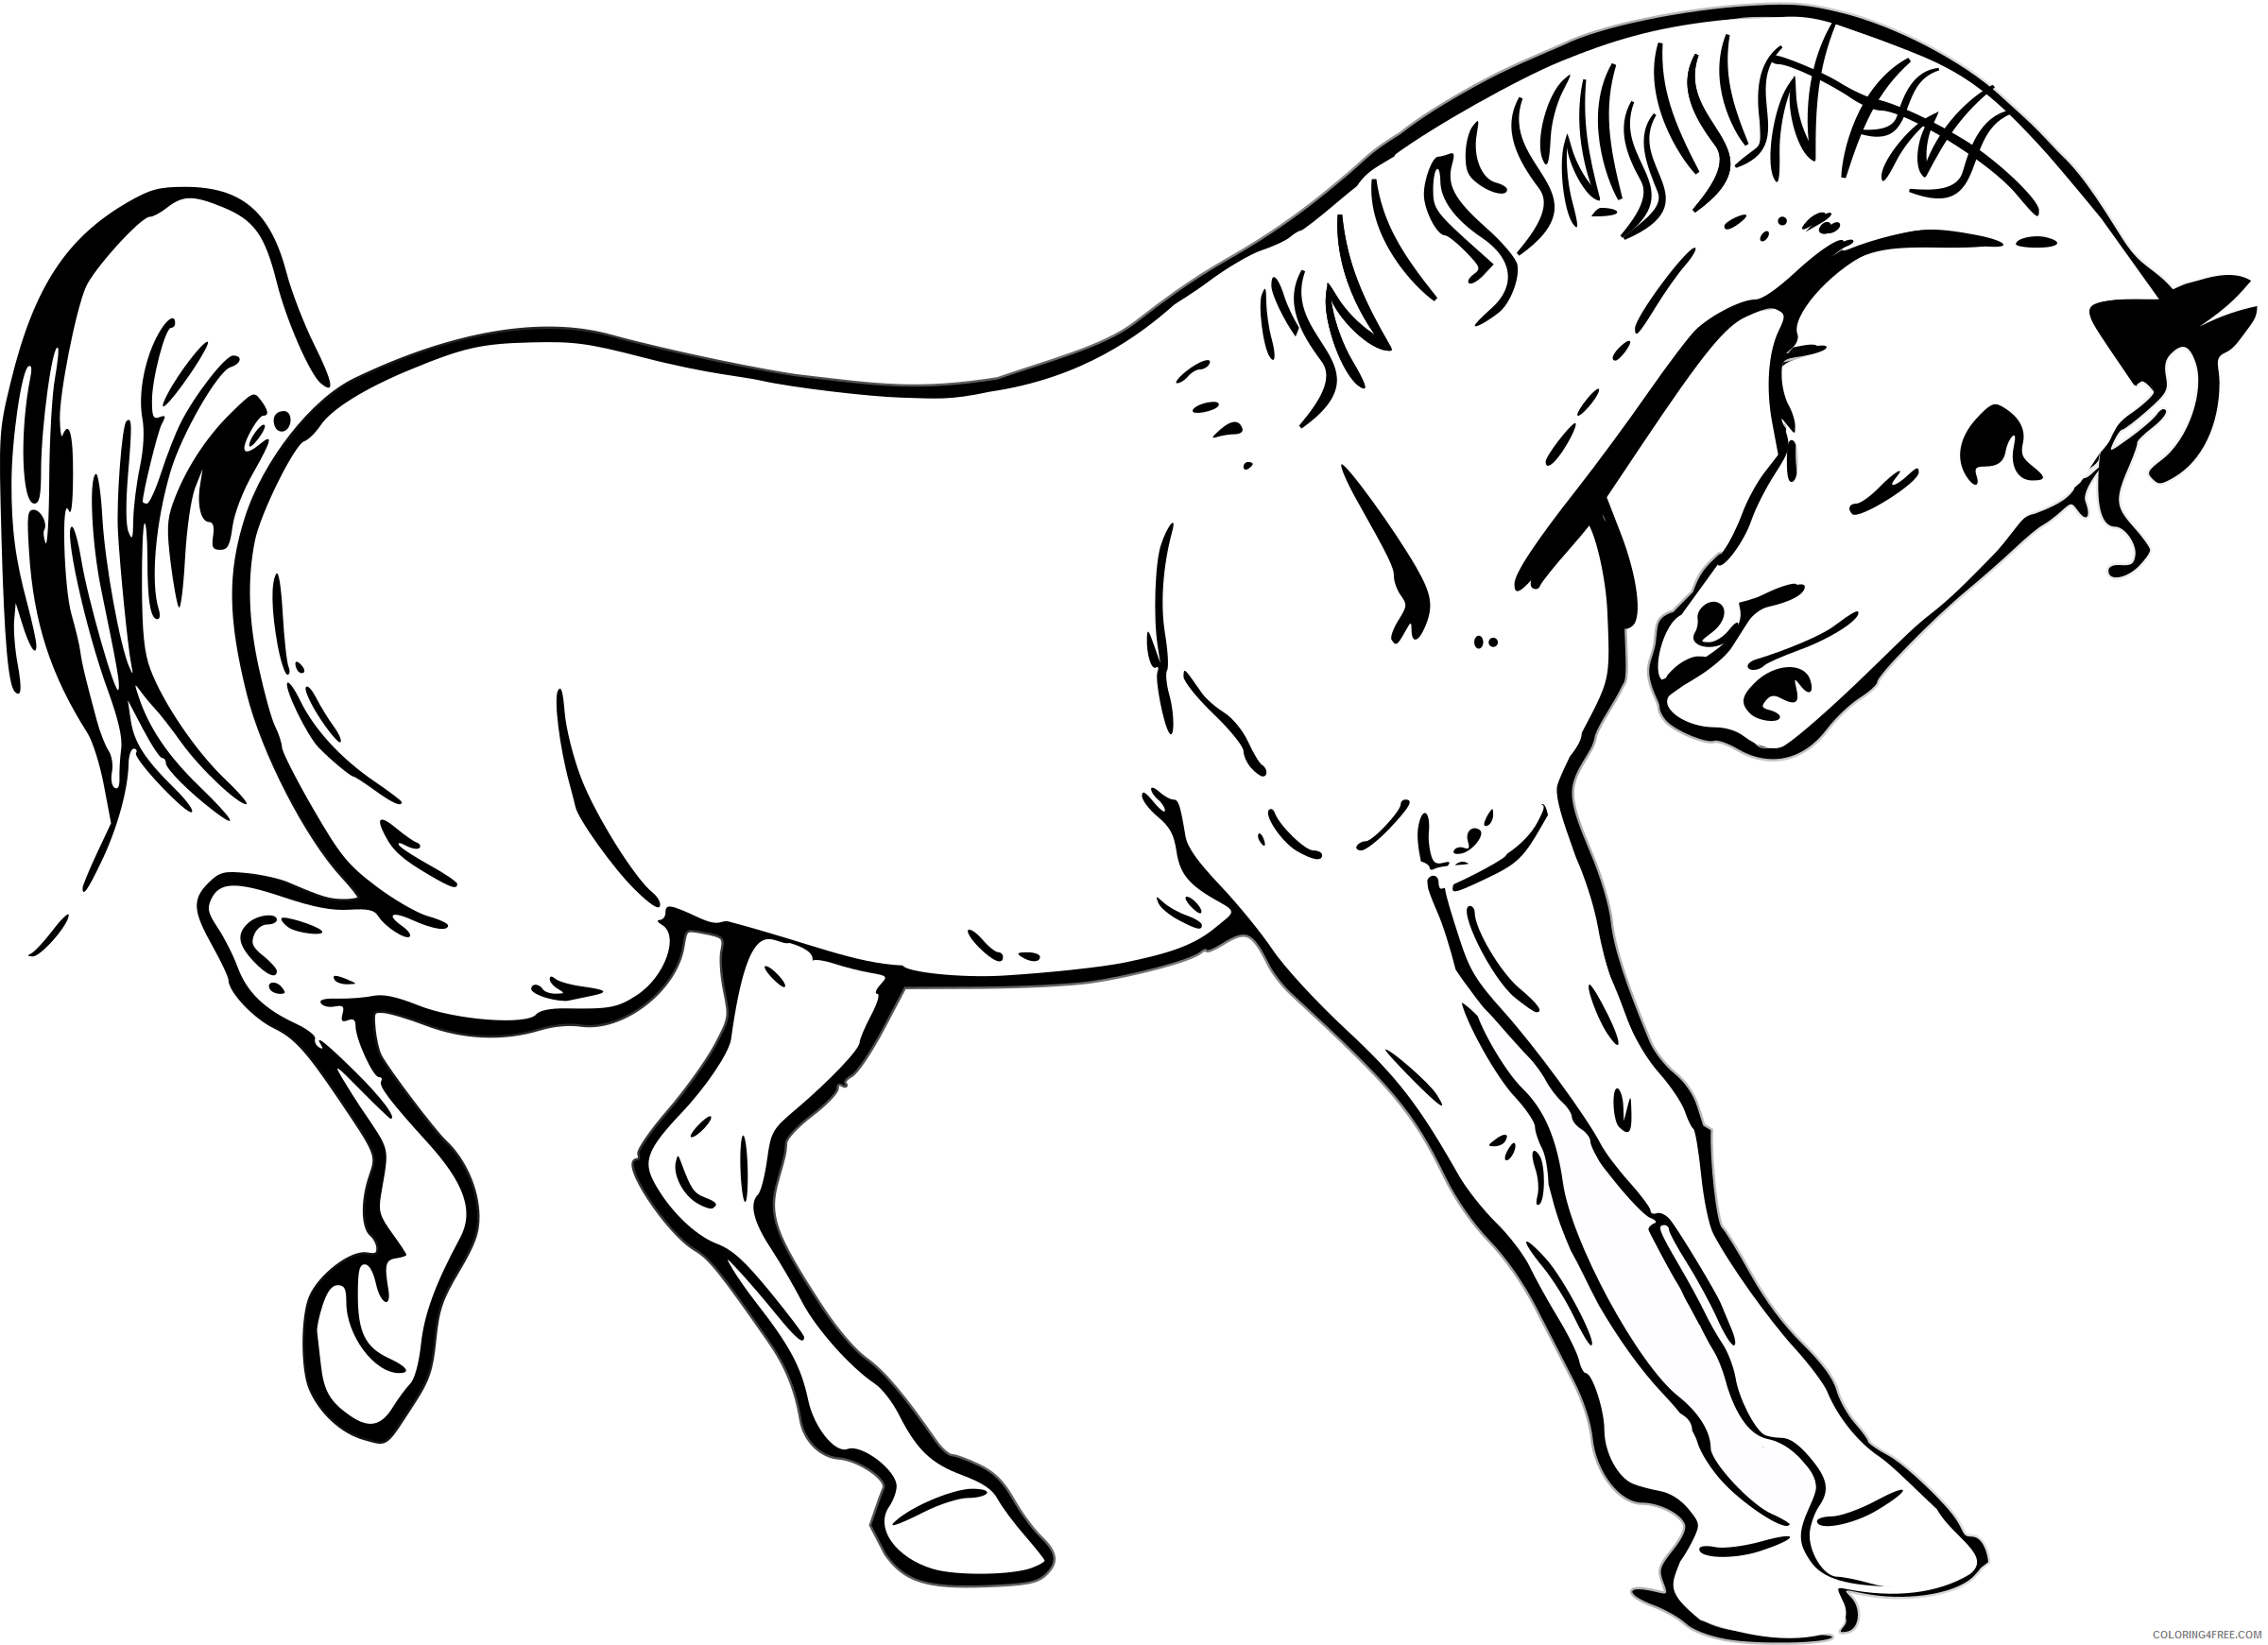 Horse Outline Coloring Pages prancing horse outline by warszawianka Printable Coloring4free